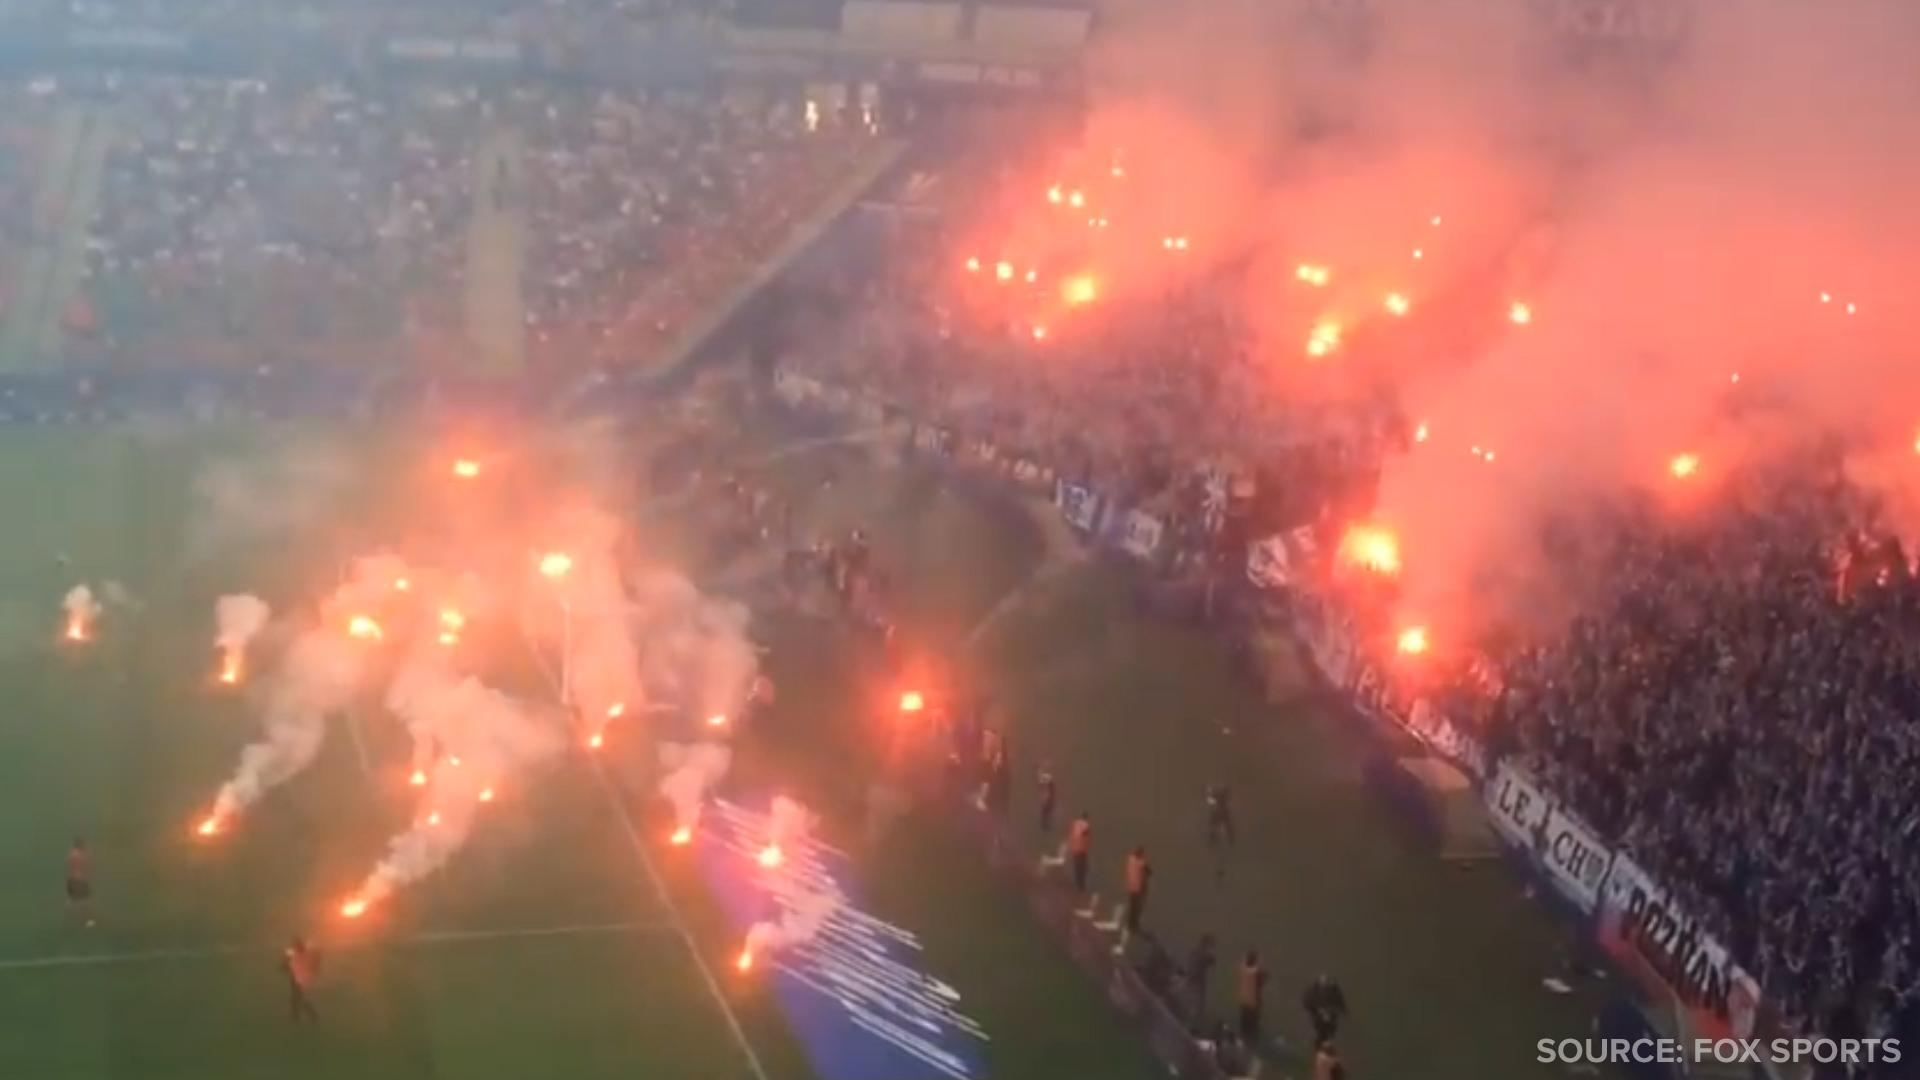 Two Soccer Fan Groups Battled Each Other with Pyrotechnics in the Stadium